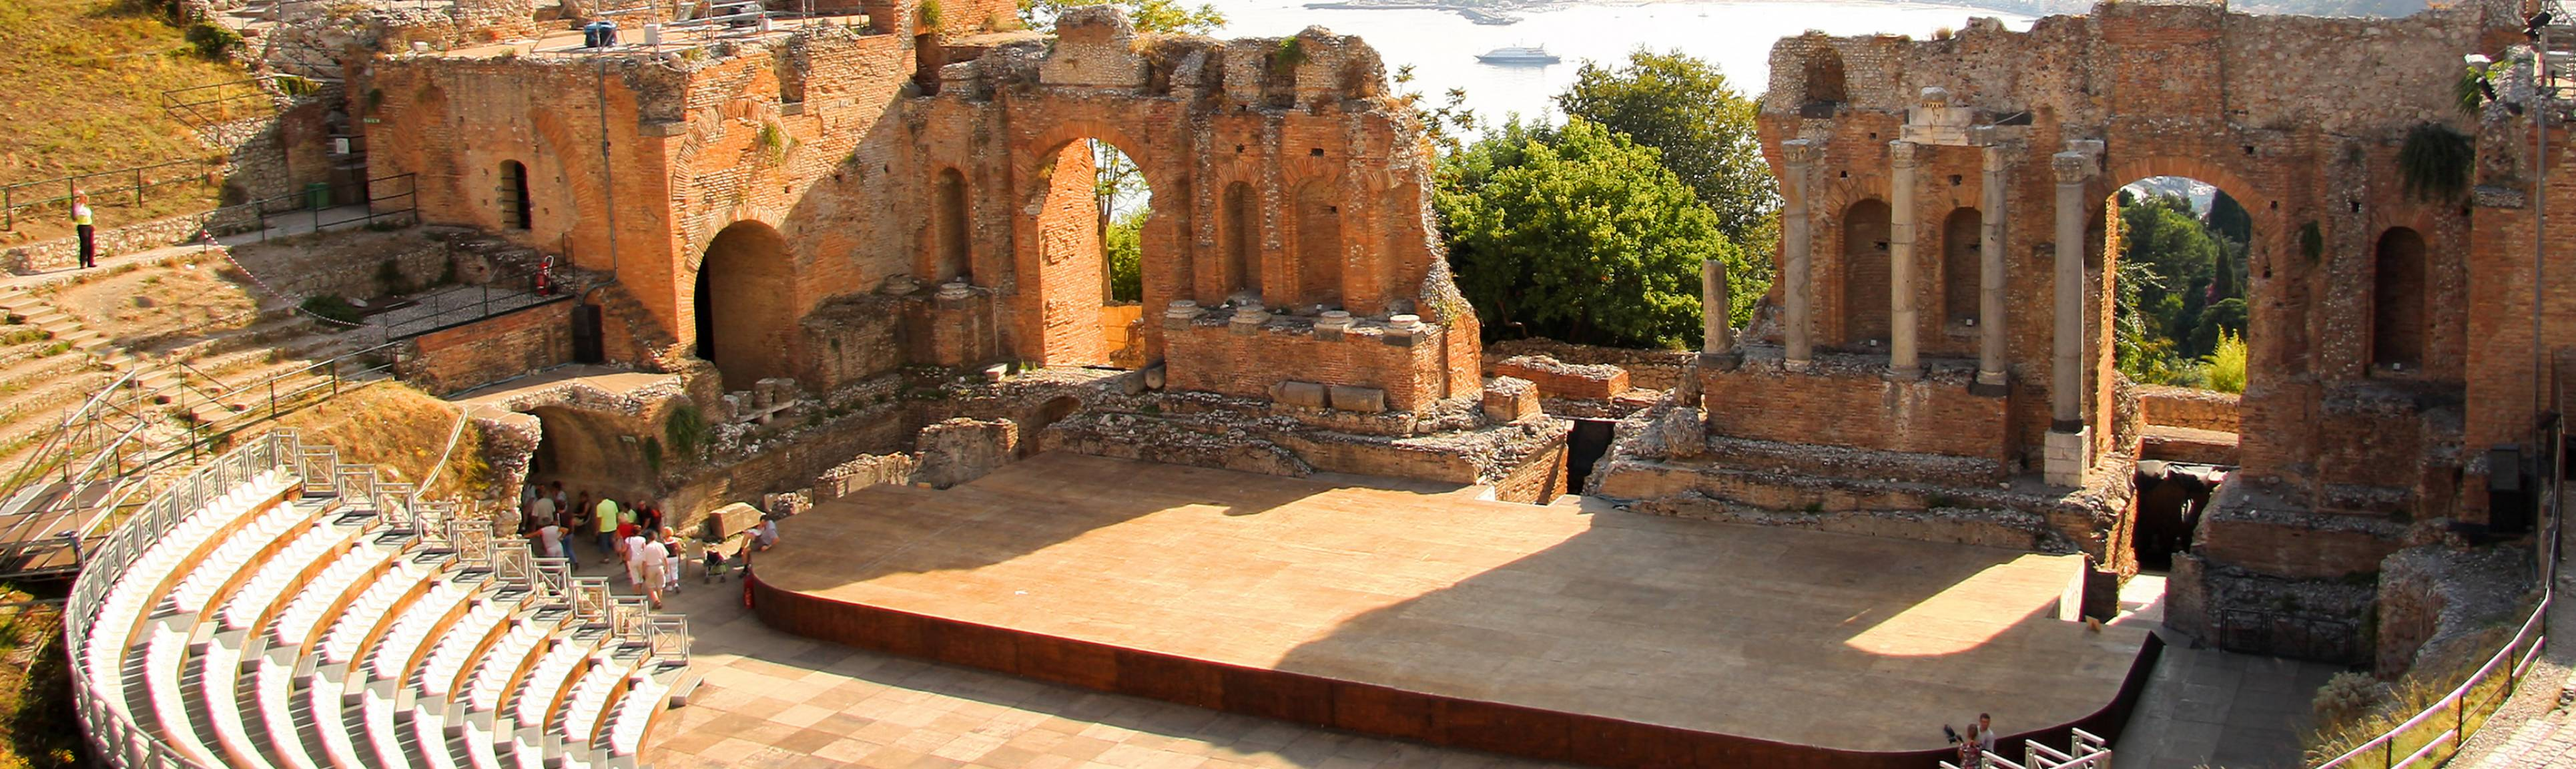 Overview of ancient amphiteatre of Toarmina in Sicily